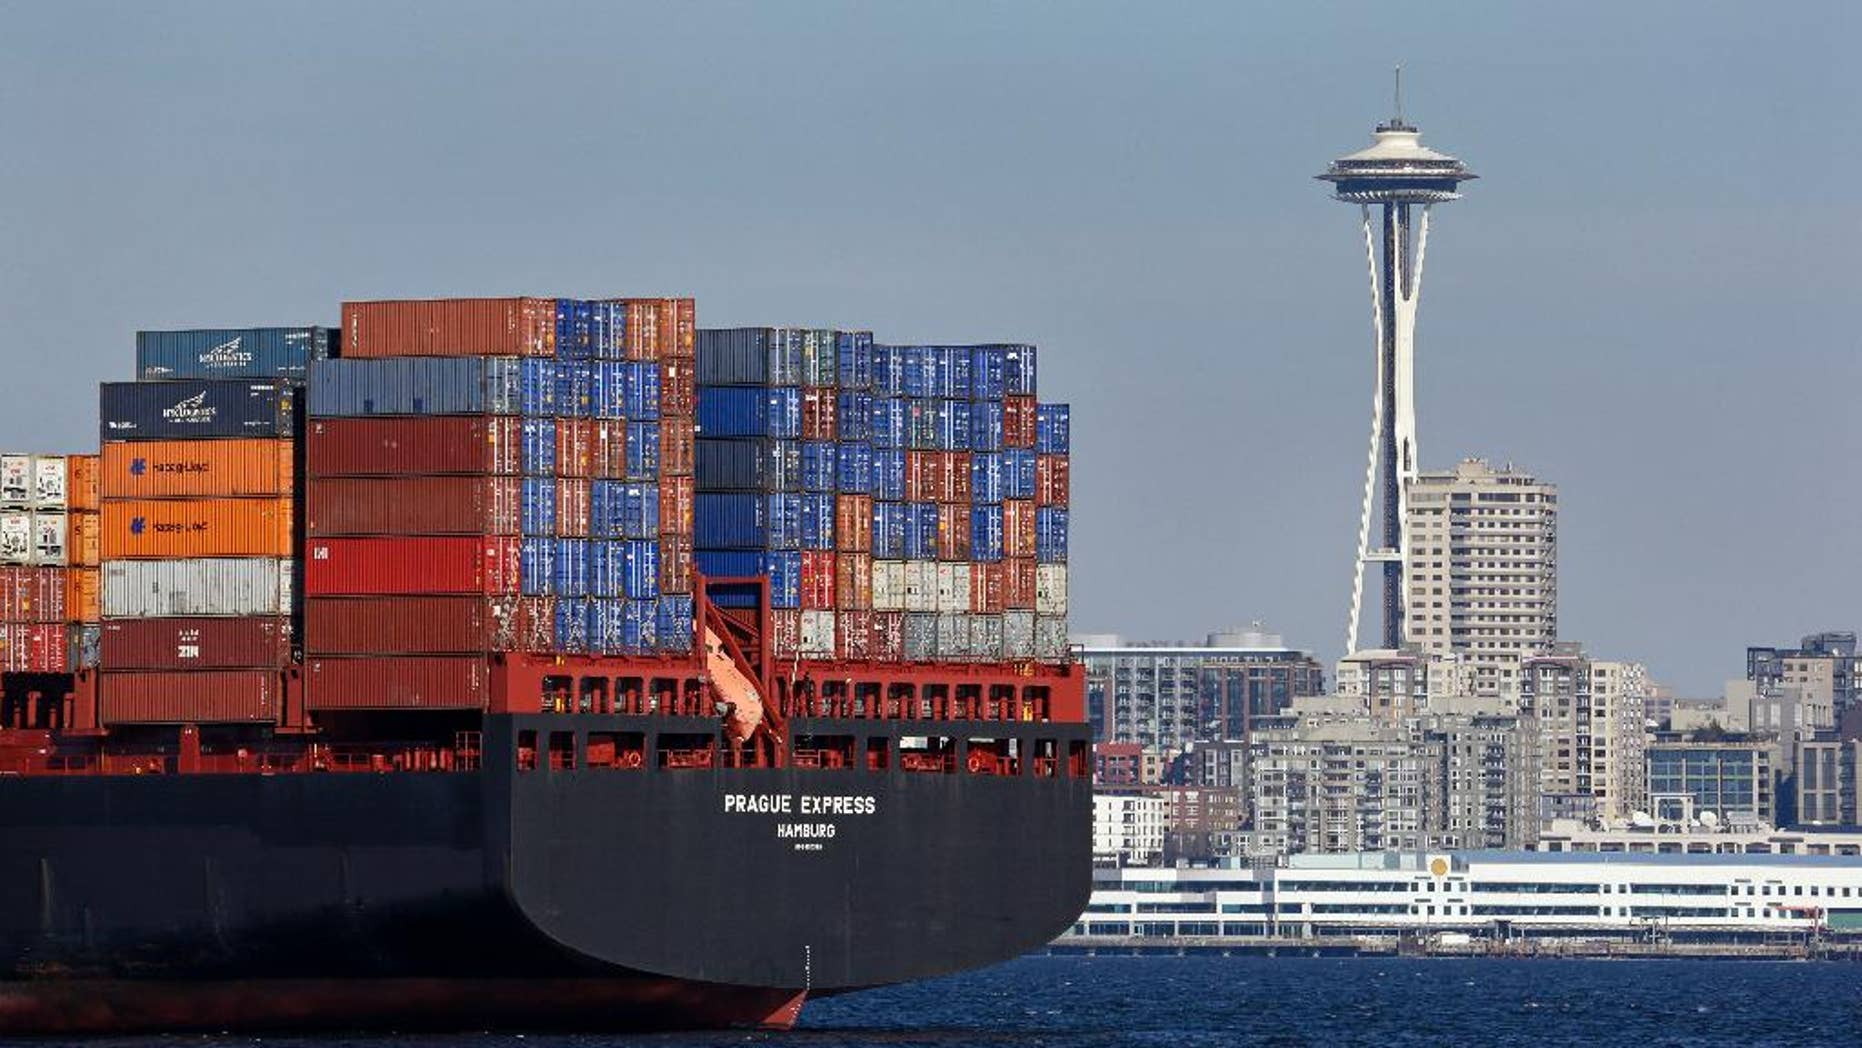 FILE - In this Feb. 15, 2015 file photo, the Space Needle towers in the background beyond a container ship anchored in Elliott Bay near downtown Seattle. The Commerce Department releases international trade data for January on Friday, March 6, 2015. (AP Photo/Elaine Thompson, File)